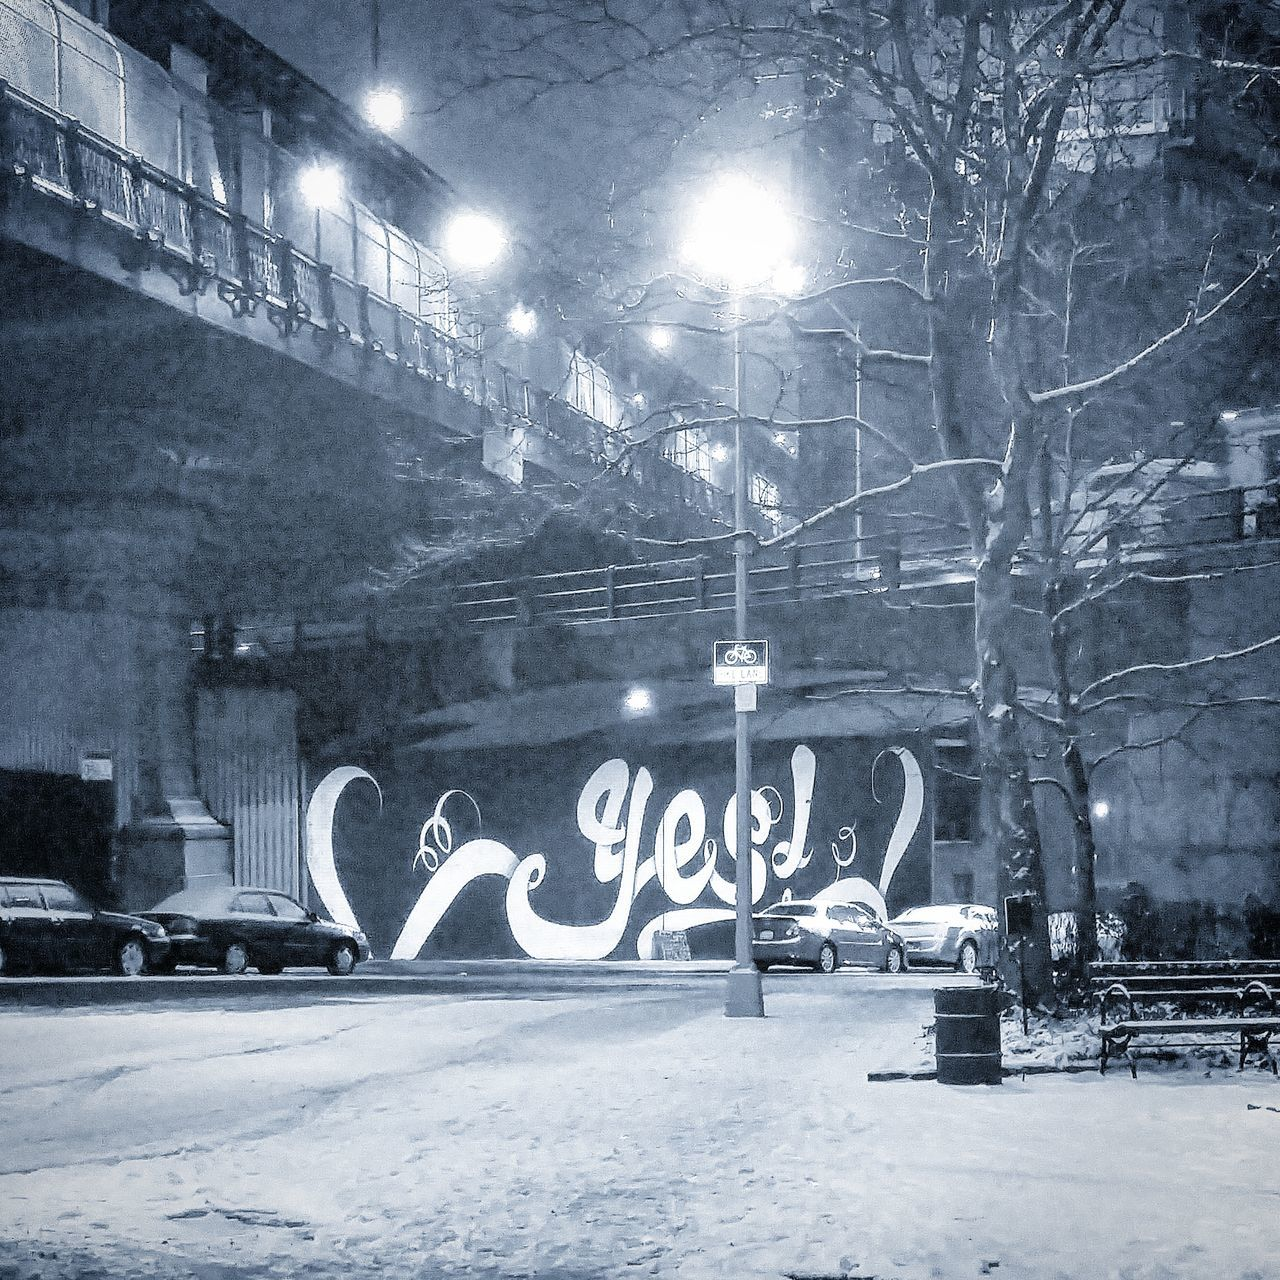 Heading Home Taking Photos Check This Out Smartphonephotography Brooklyn Snow Covered Snow Wintertime Downtown Brooklyn Home